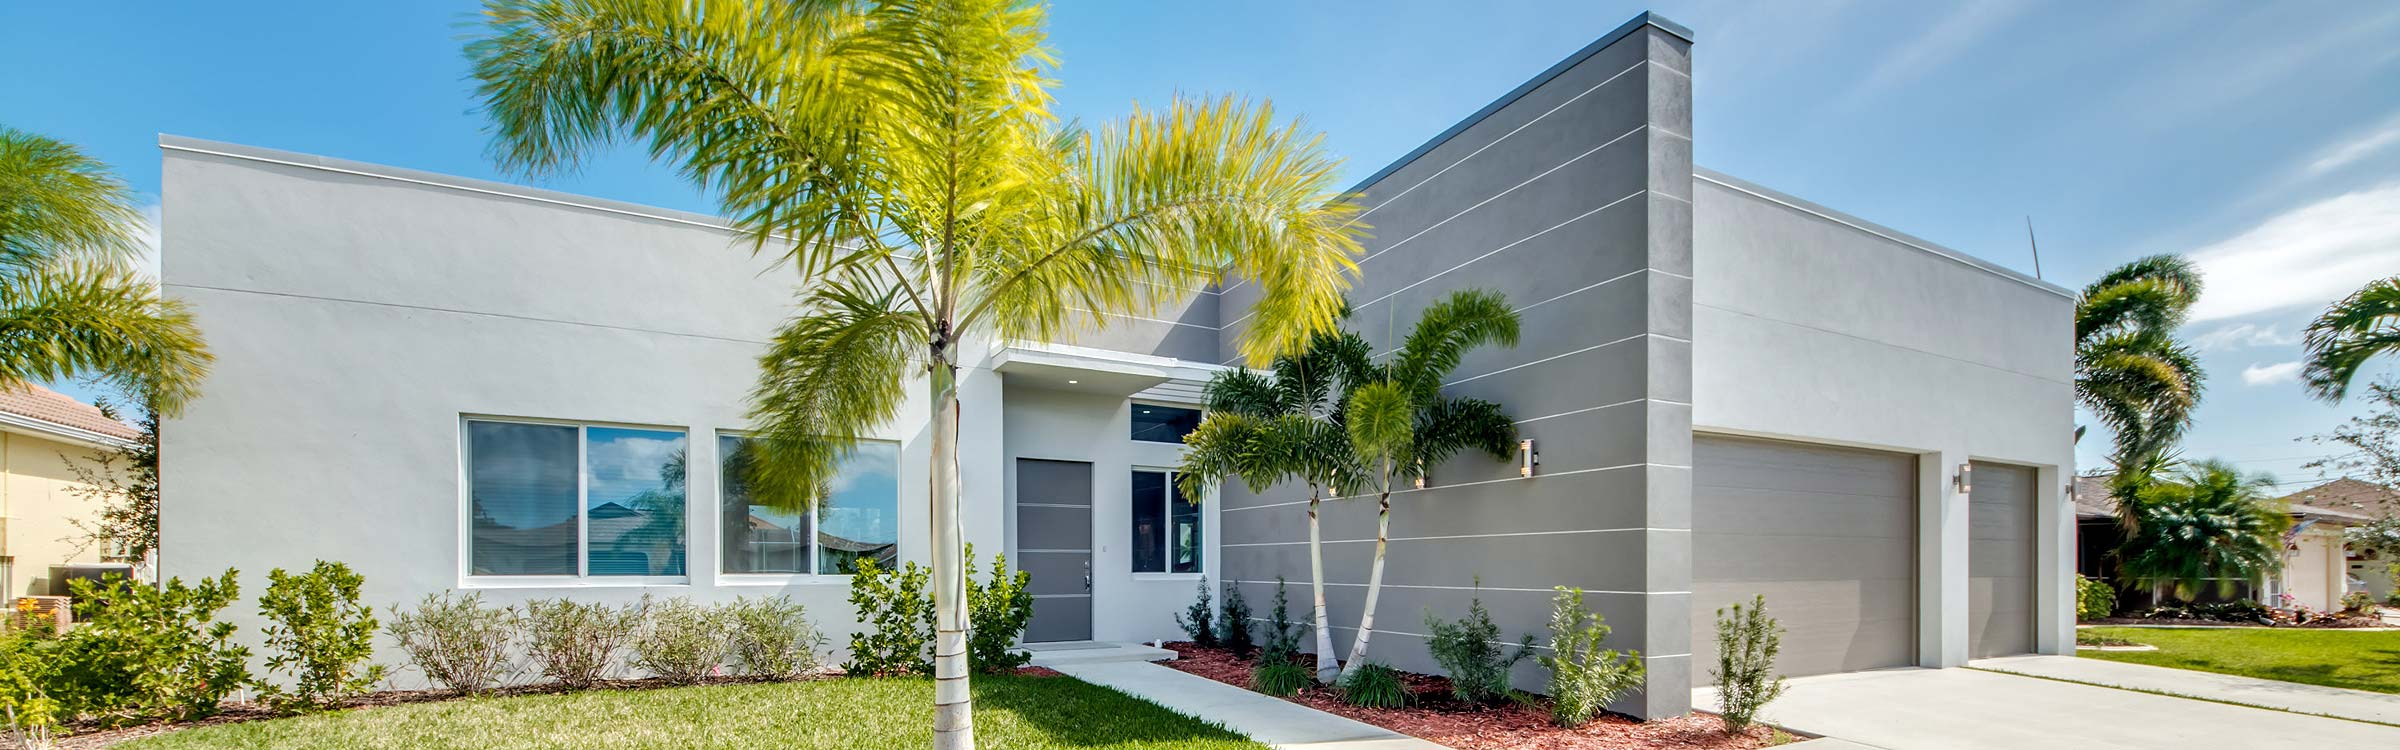 Neubaumodelle in Cape Coral | Florida